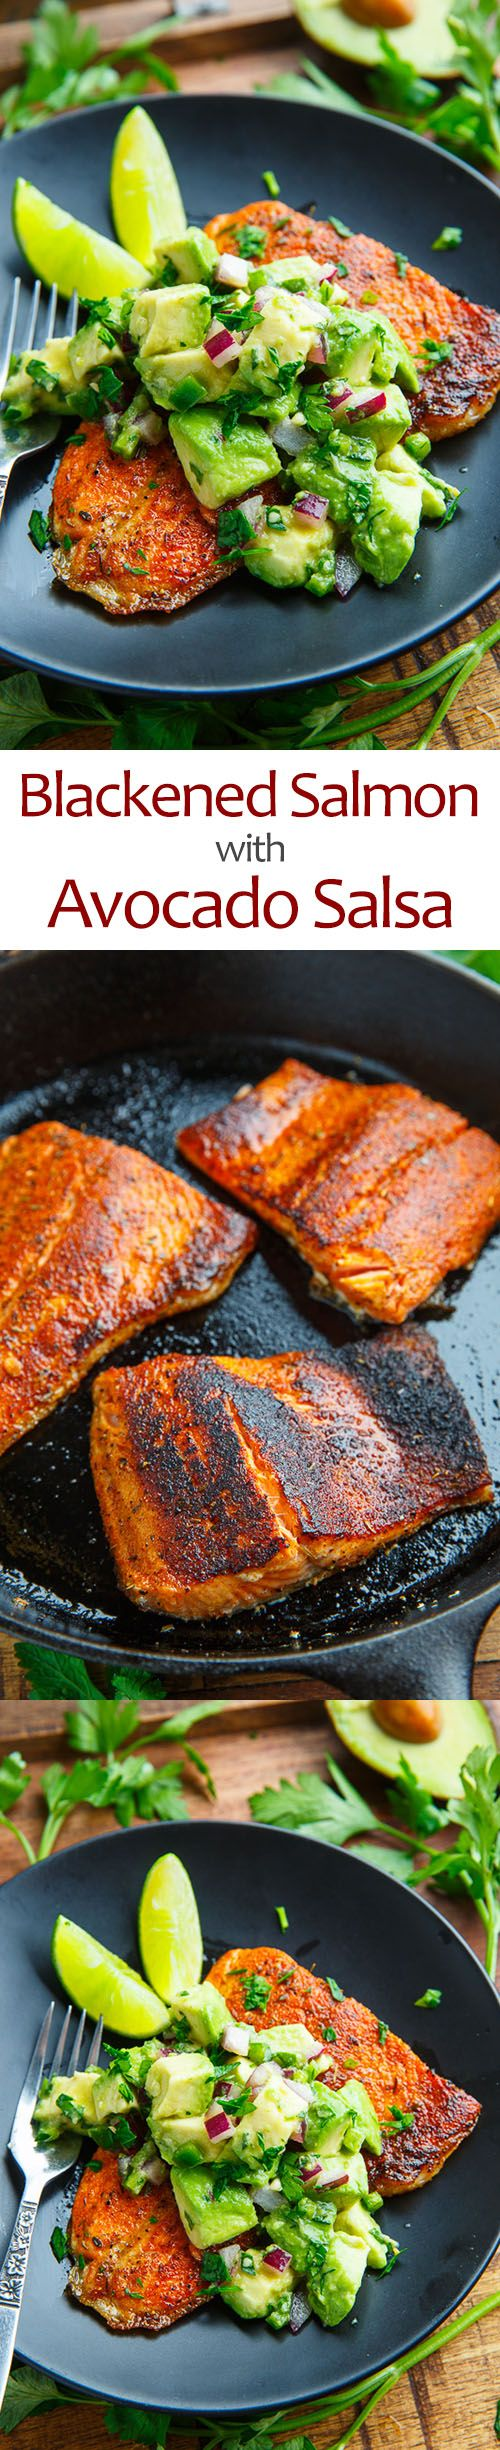 Blackened Salmon with Avocado Salsa